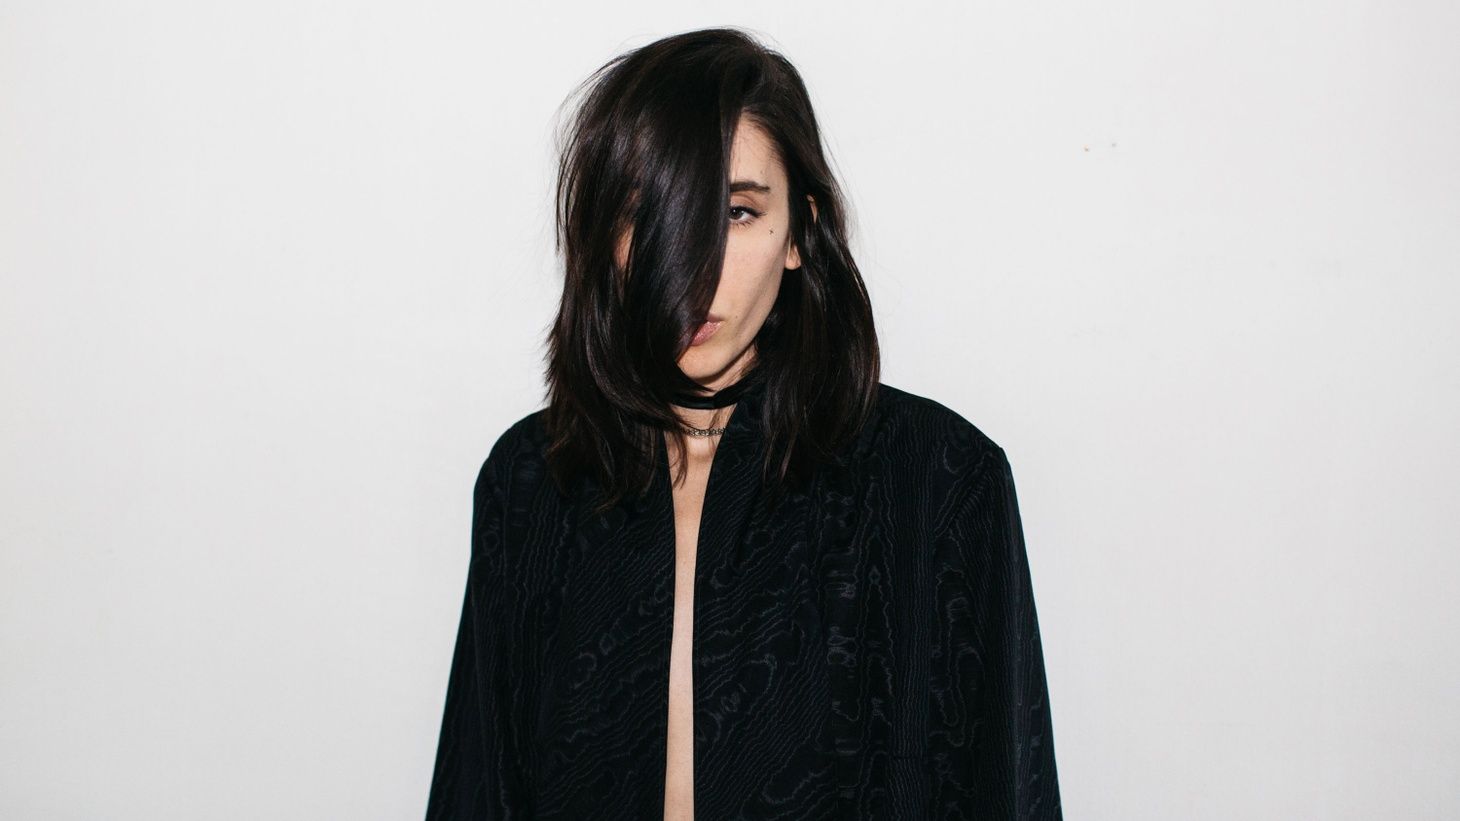 """Back in 2015, we introduced you to Elohim on our music blog. Just a few weeks ago we highlighted her work on KCRW's email blast """"5 Songs to Hear This Week."""""""